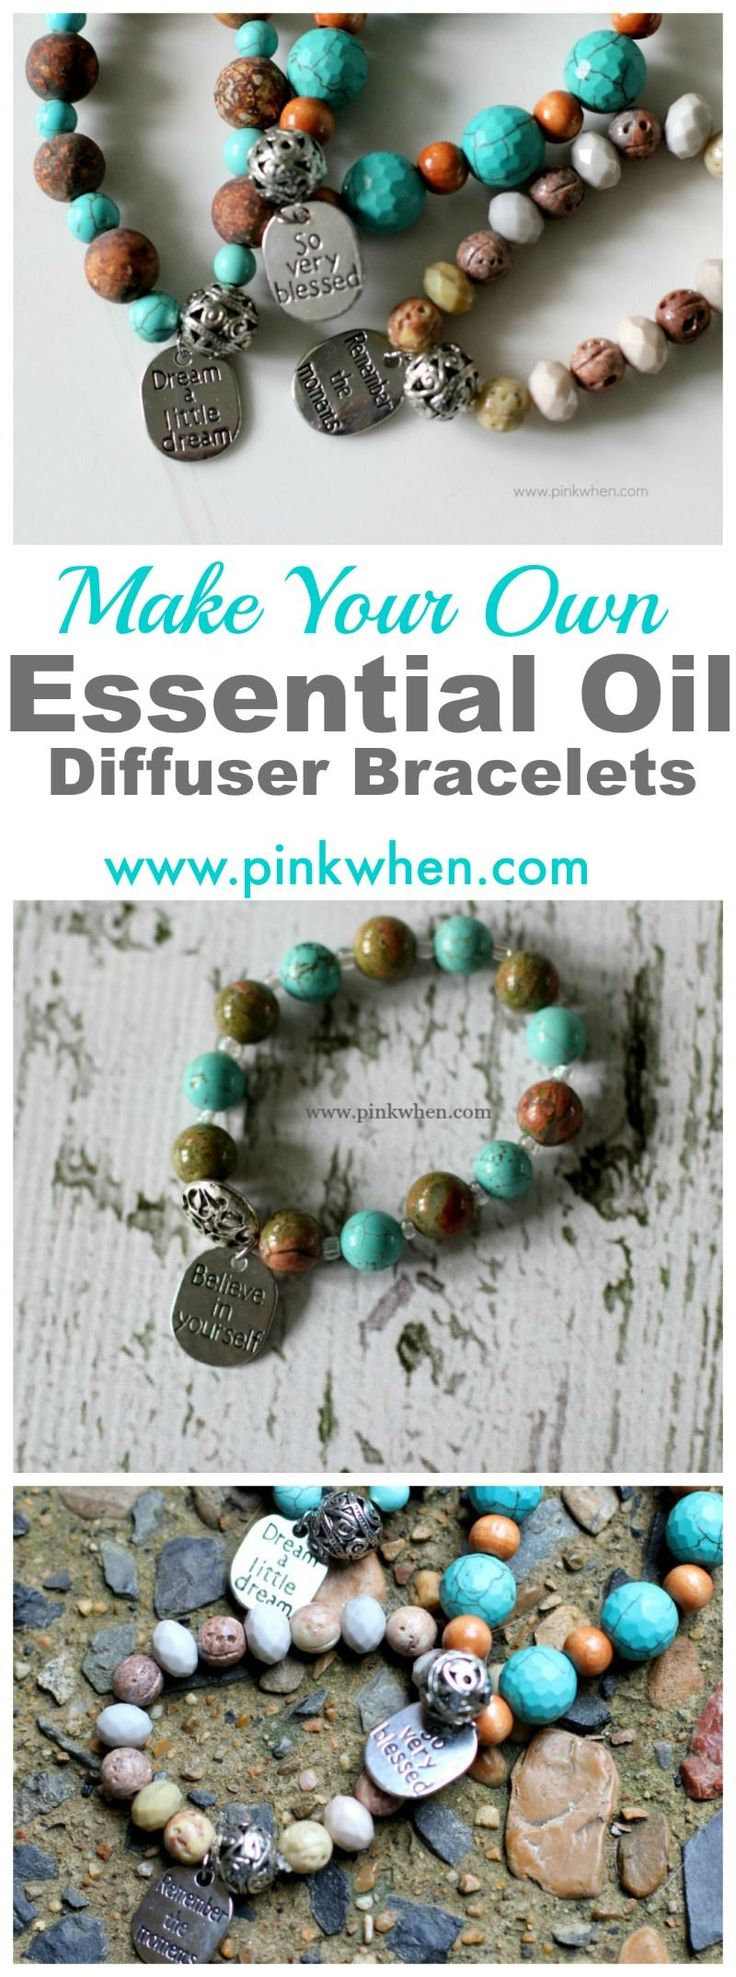 How to make your own diffuser bracelets. So cool!